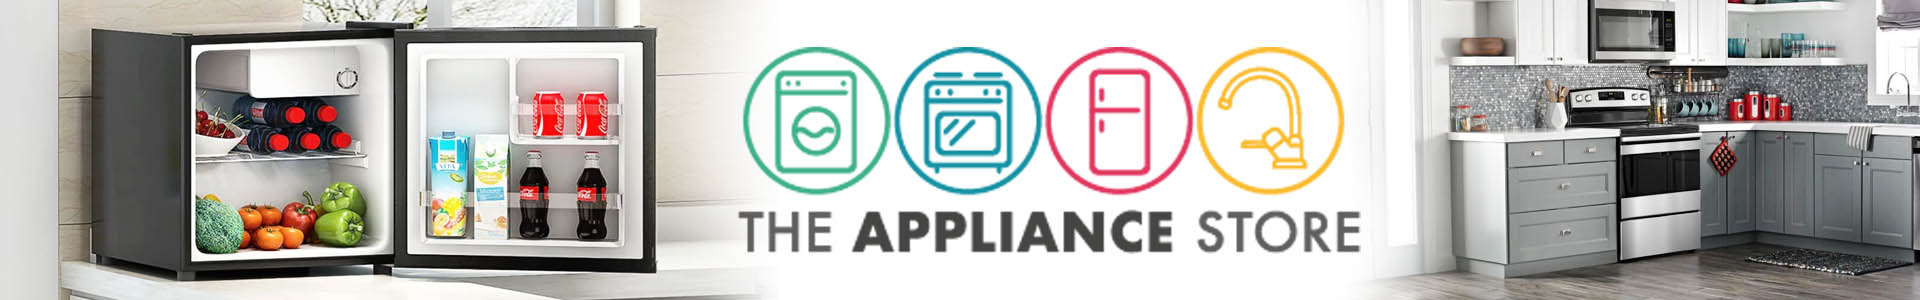 Toptopdeal-co-uk The Appliance Store